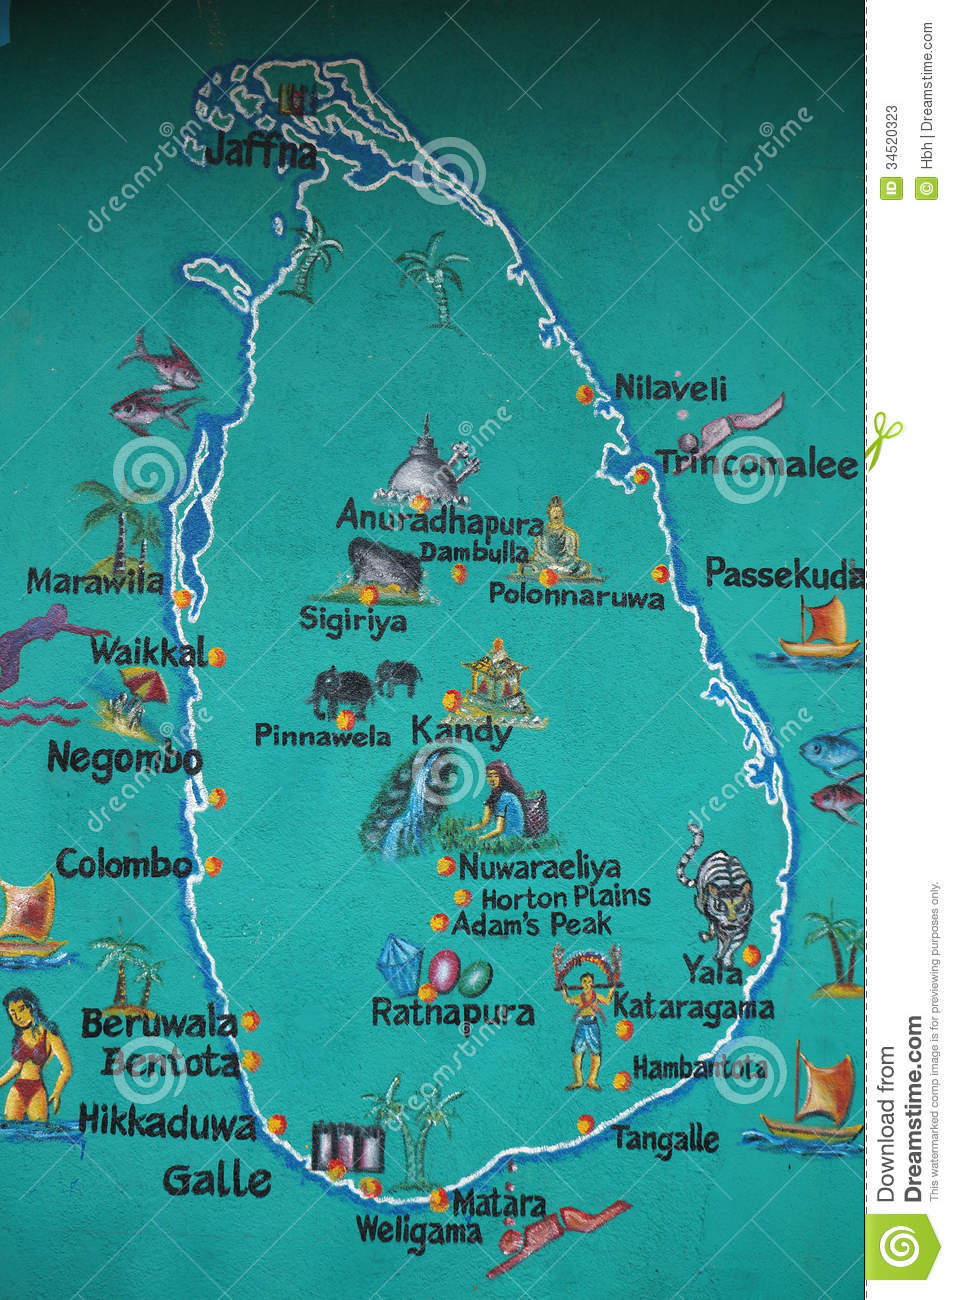 Sri Lanka Is Marked On The Map Of The Tourist Attractions